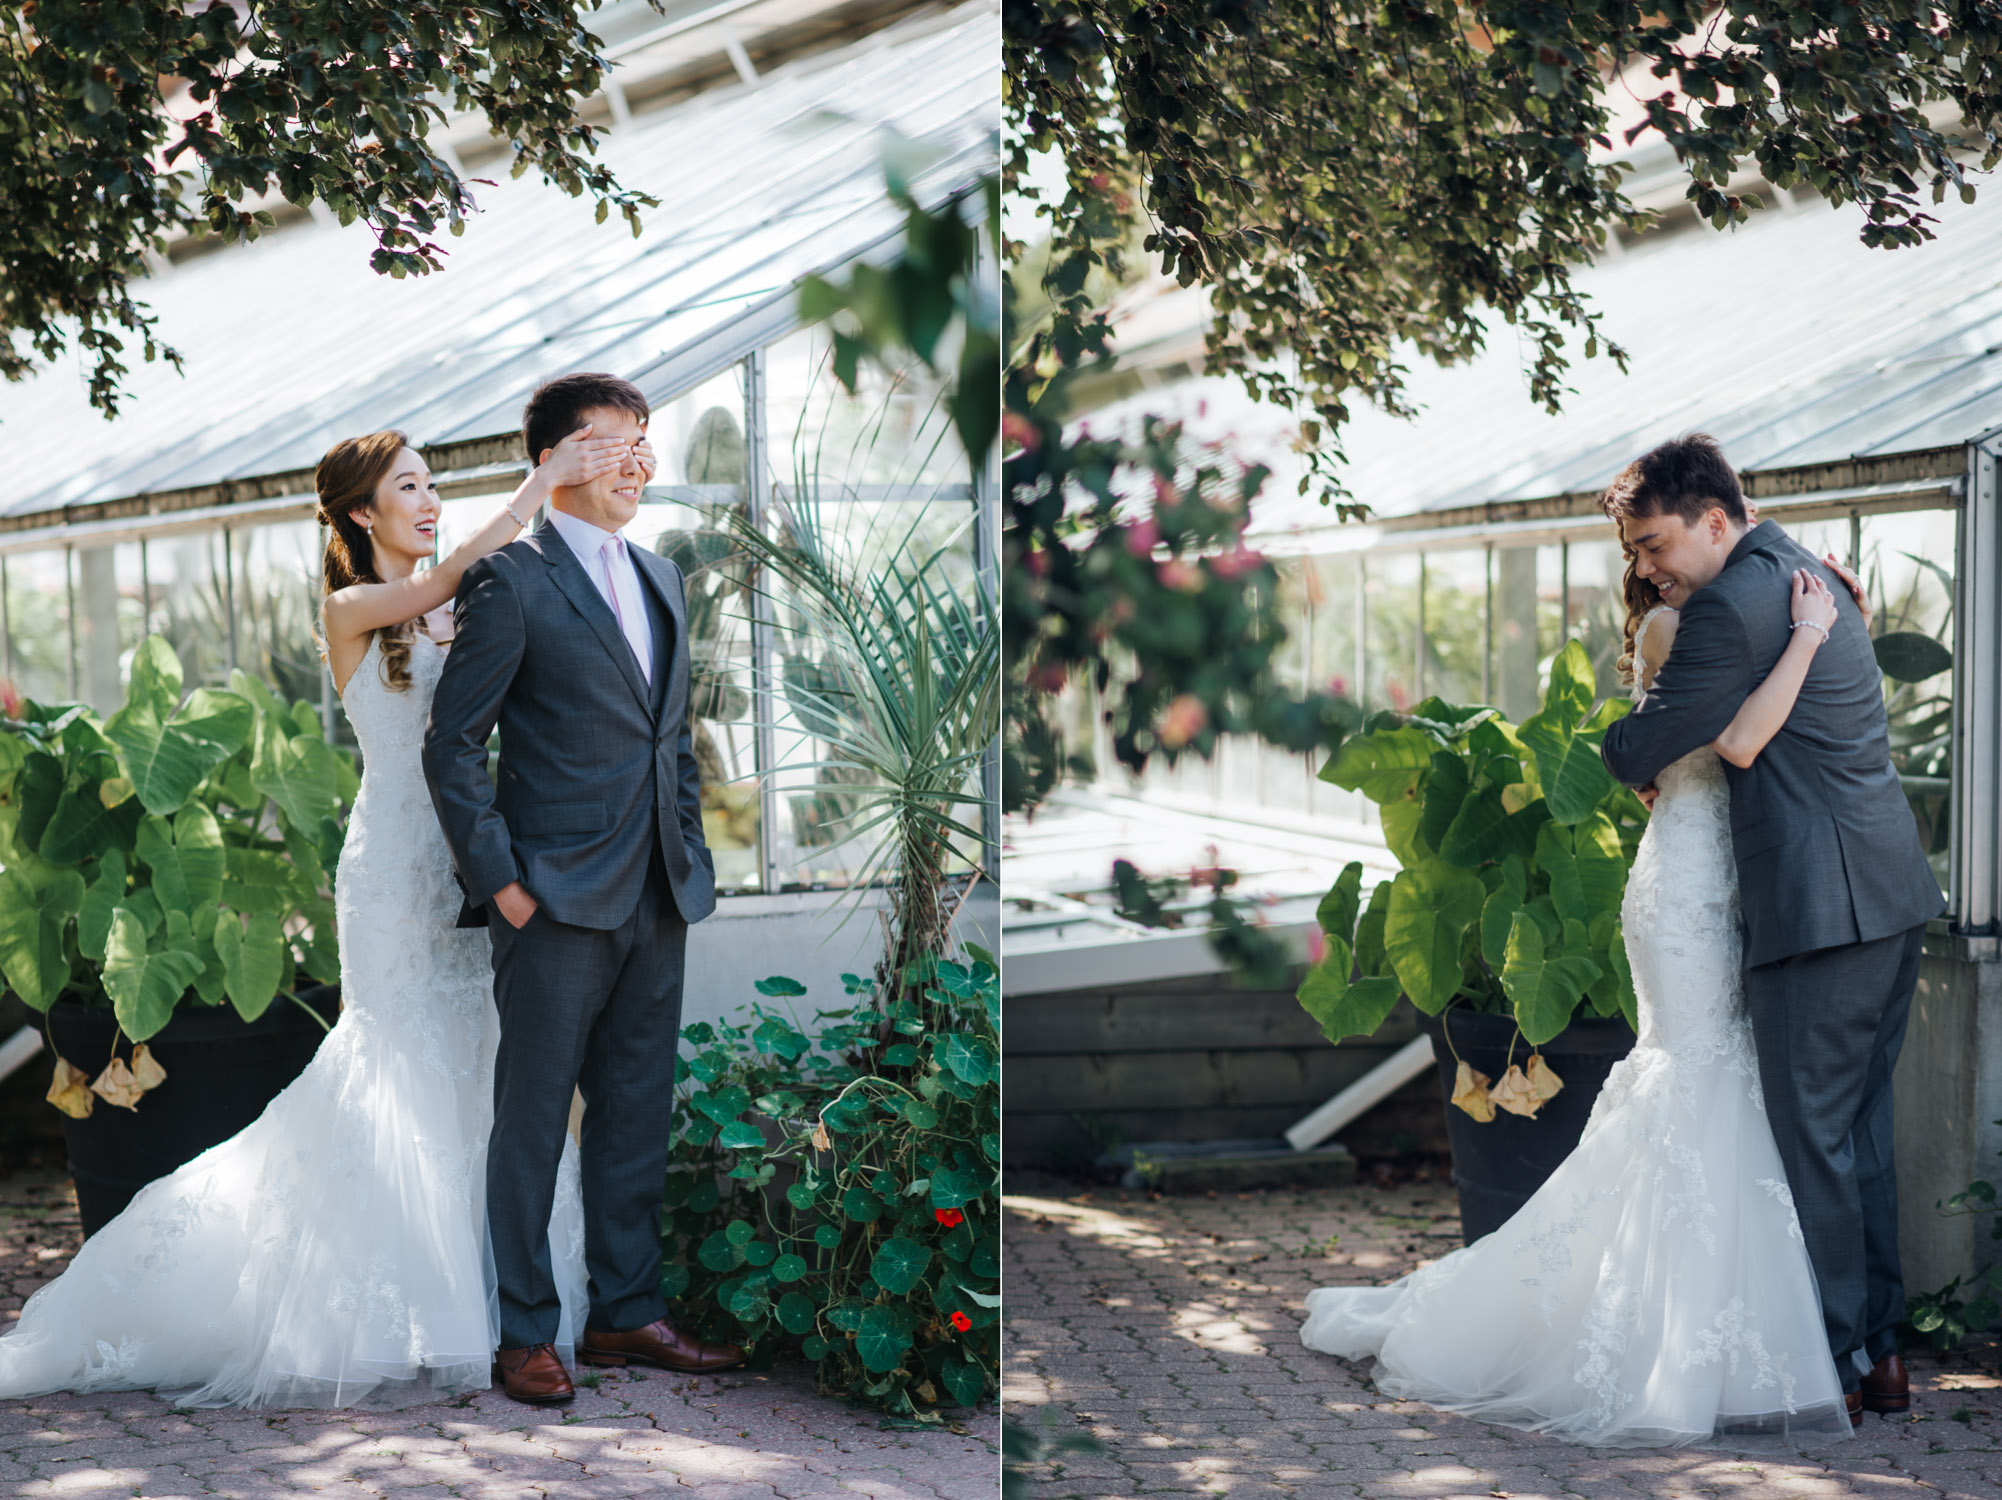 First look photo at Edwards Garden Wedding Photography